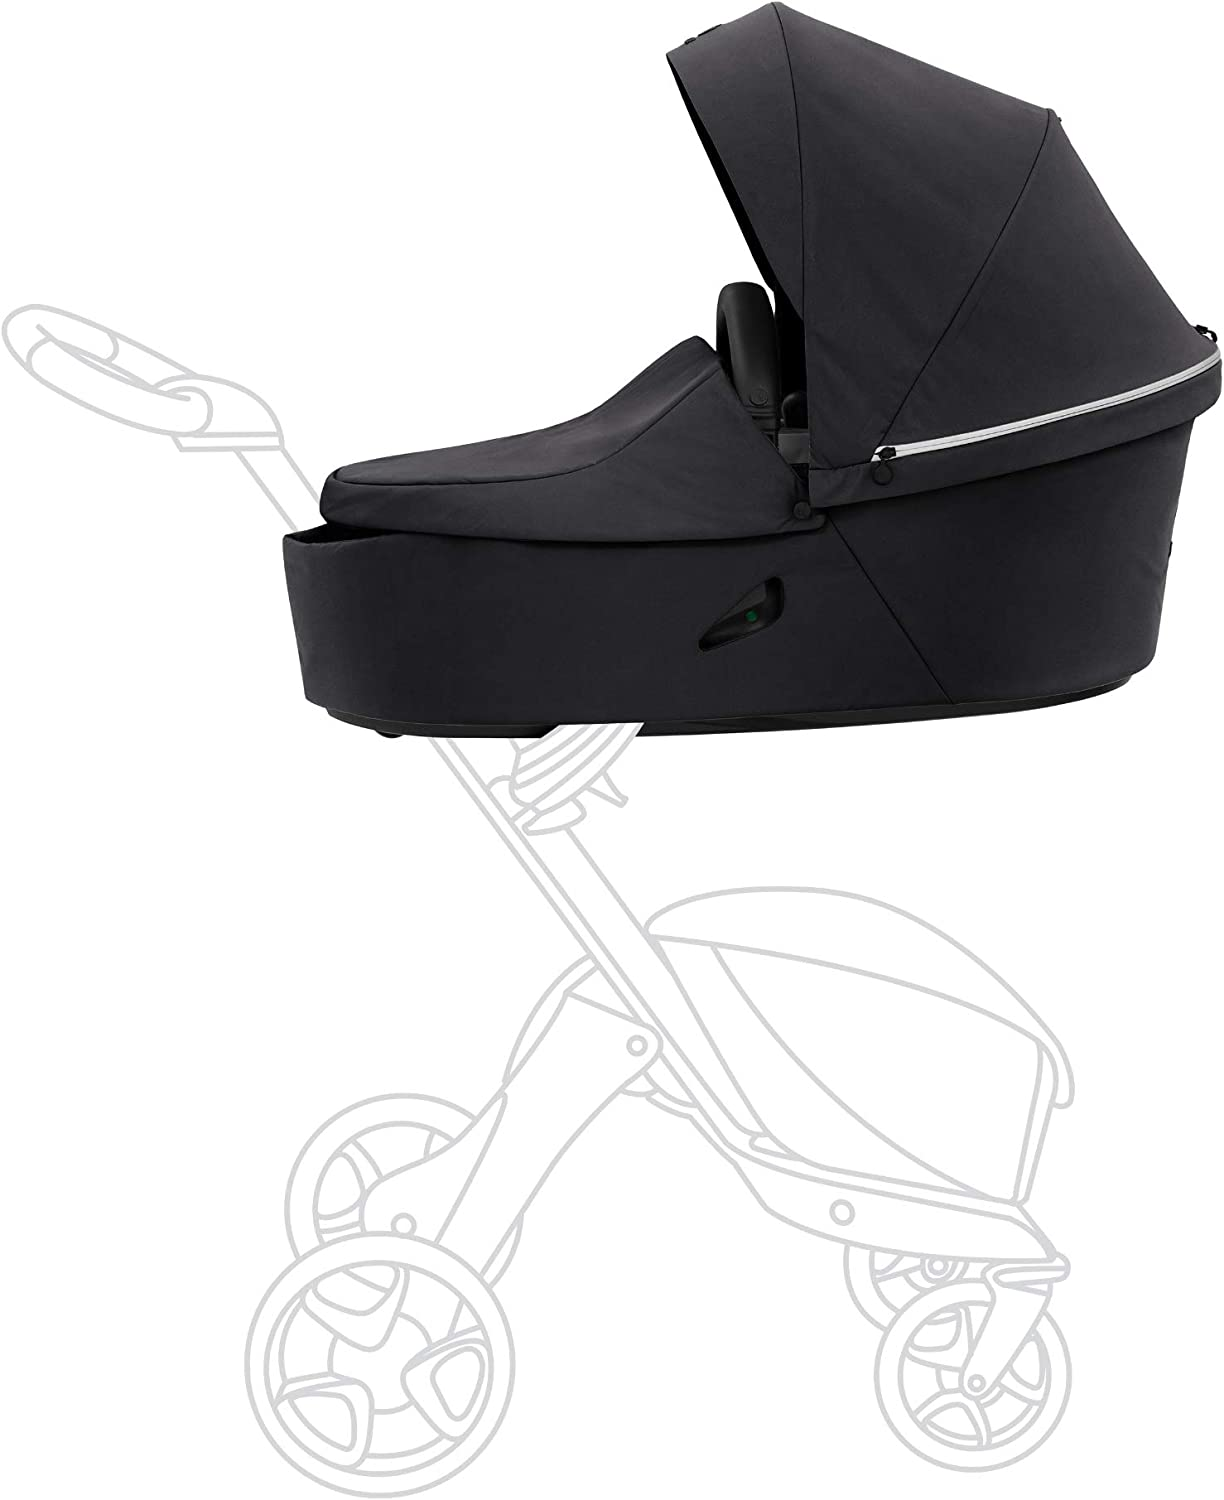 Stokke Xplory X Carry Cot, Rich Black - Detachable Cot for Xplory X Stroller - Soft Interior Lining & Breathable Mattress - with Extended Canopy, Removable Wind Cover & Two Easy-Access Pockets